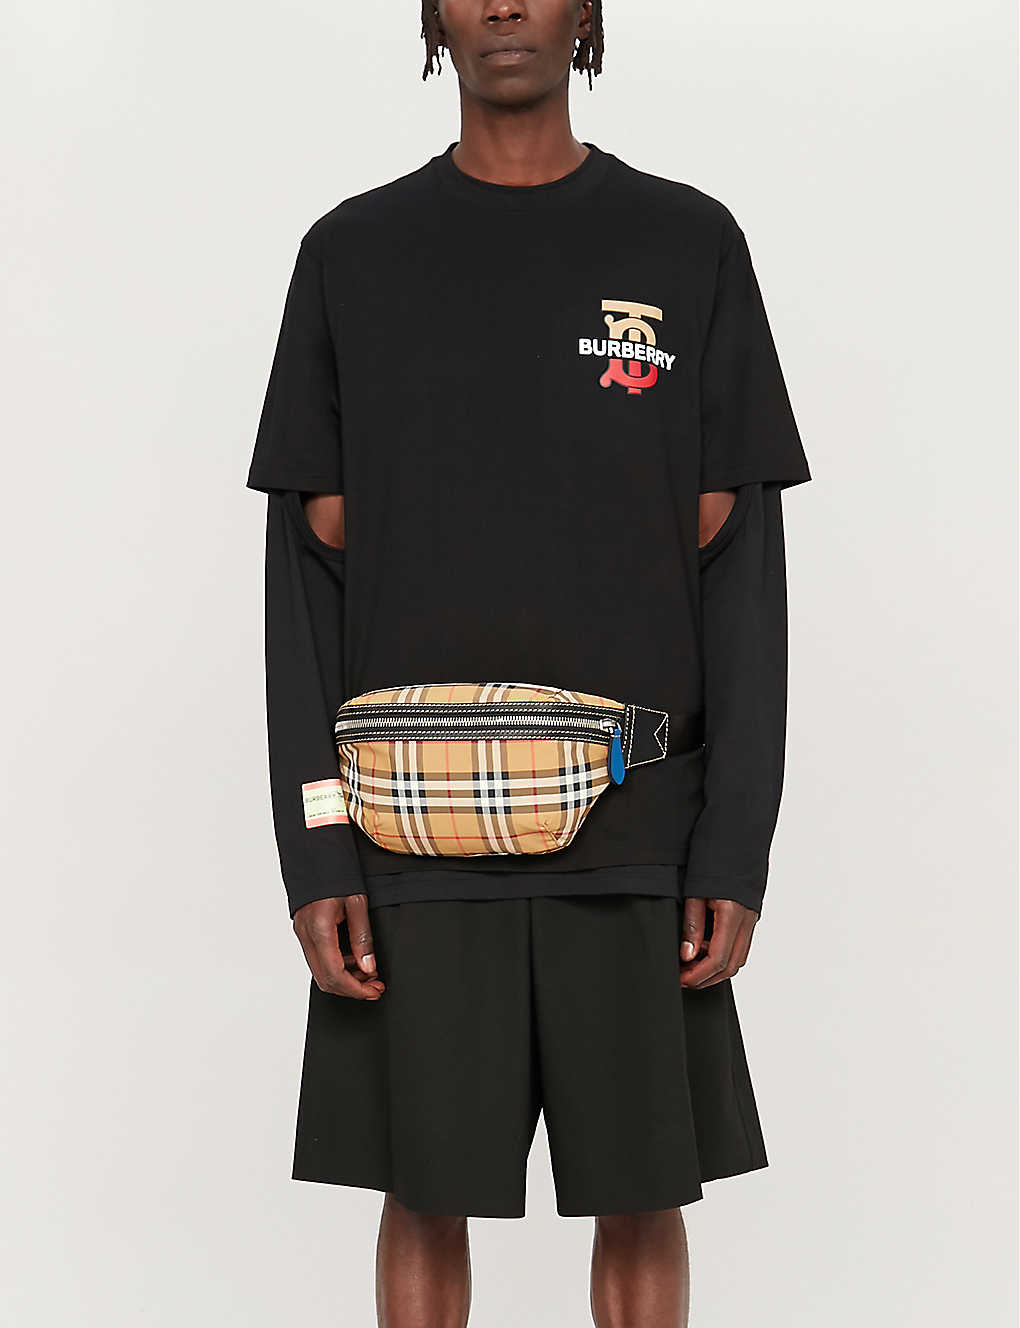 adea405b3 BURBERRY - Gately logo-print cotton-jersey T-shirt | Selfridges.com